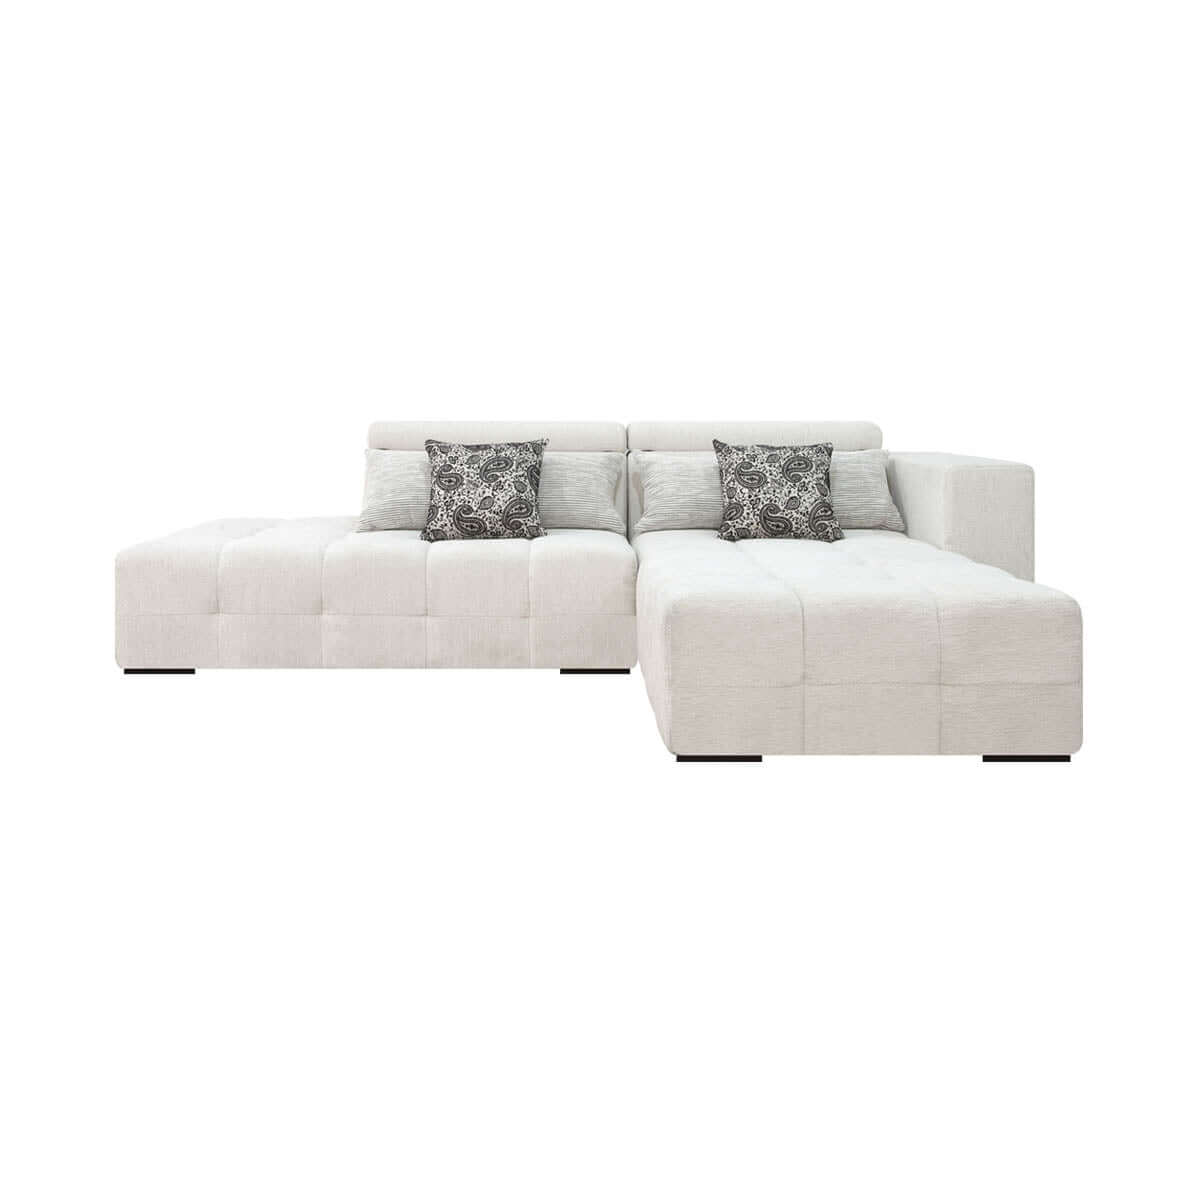 white sofa jakarta bali head rest two seater